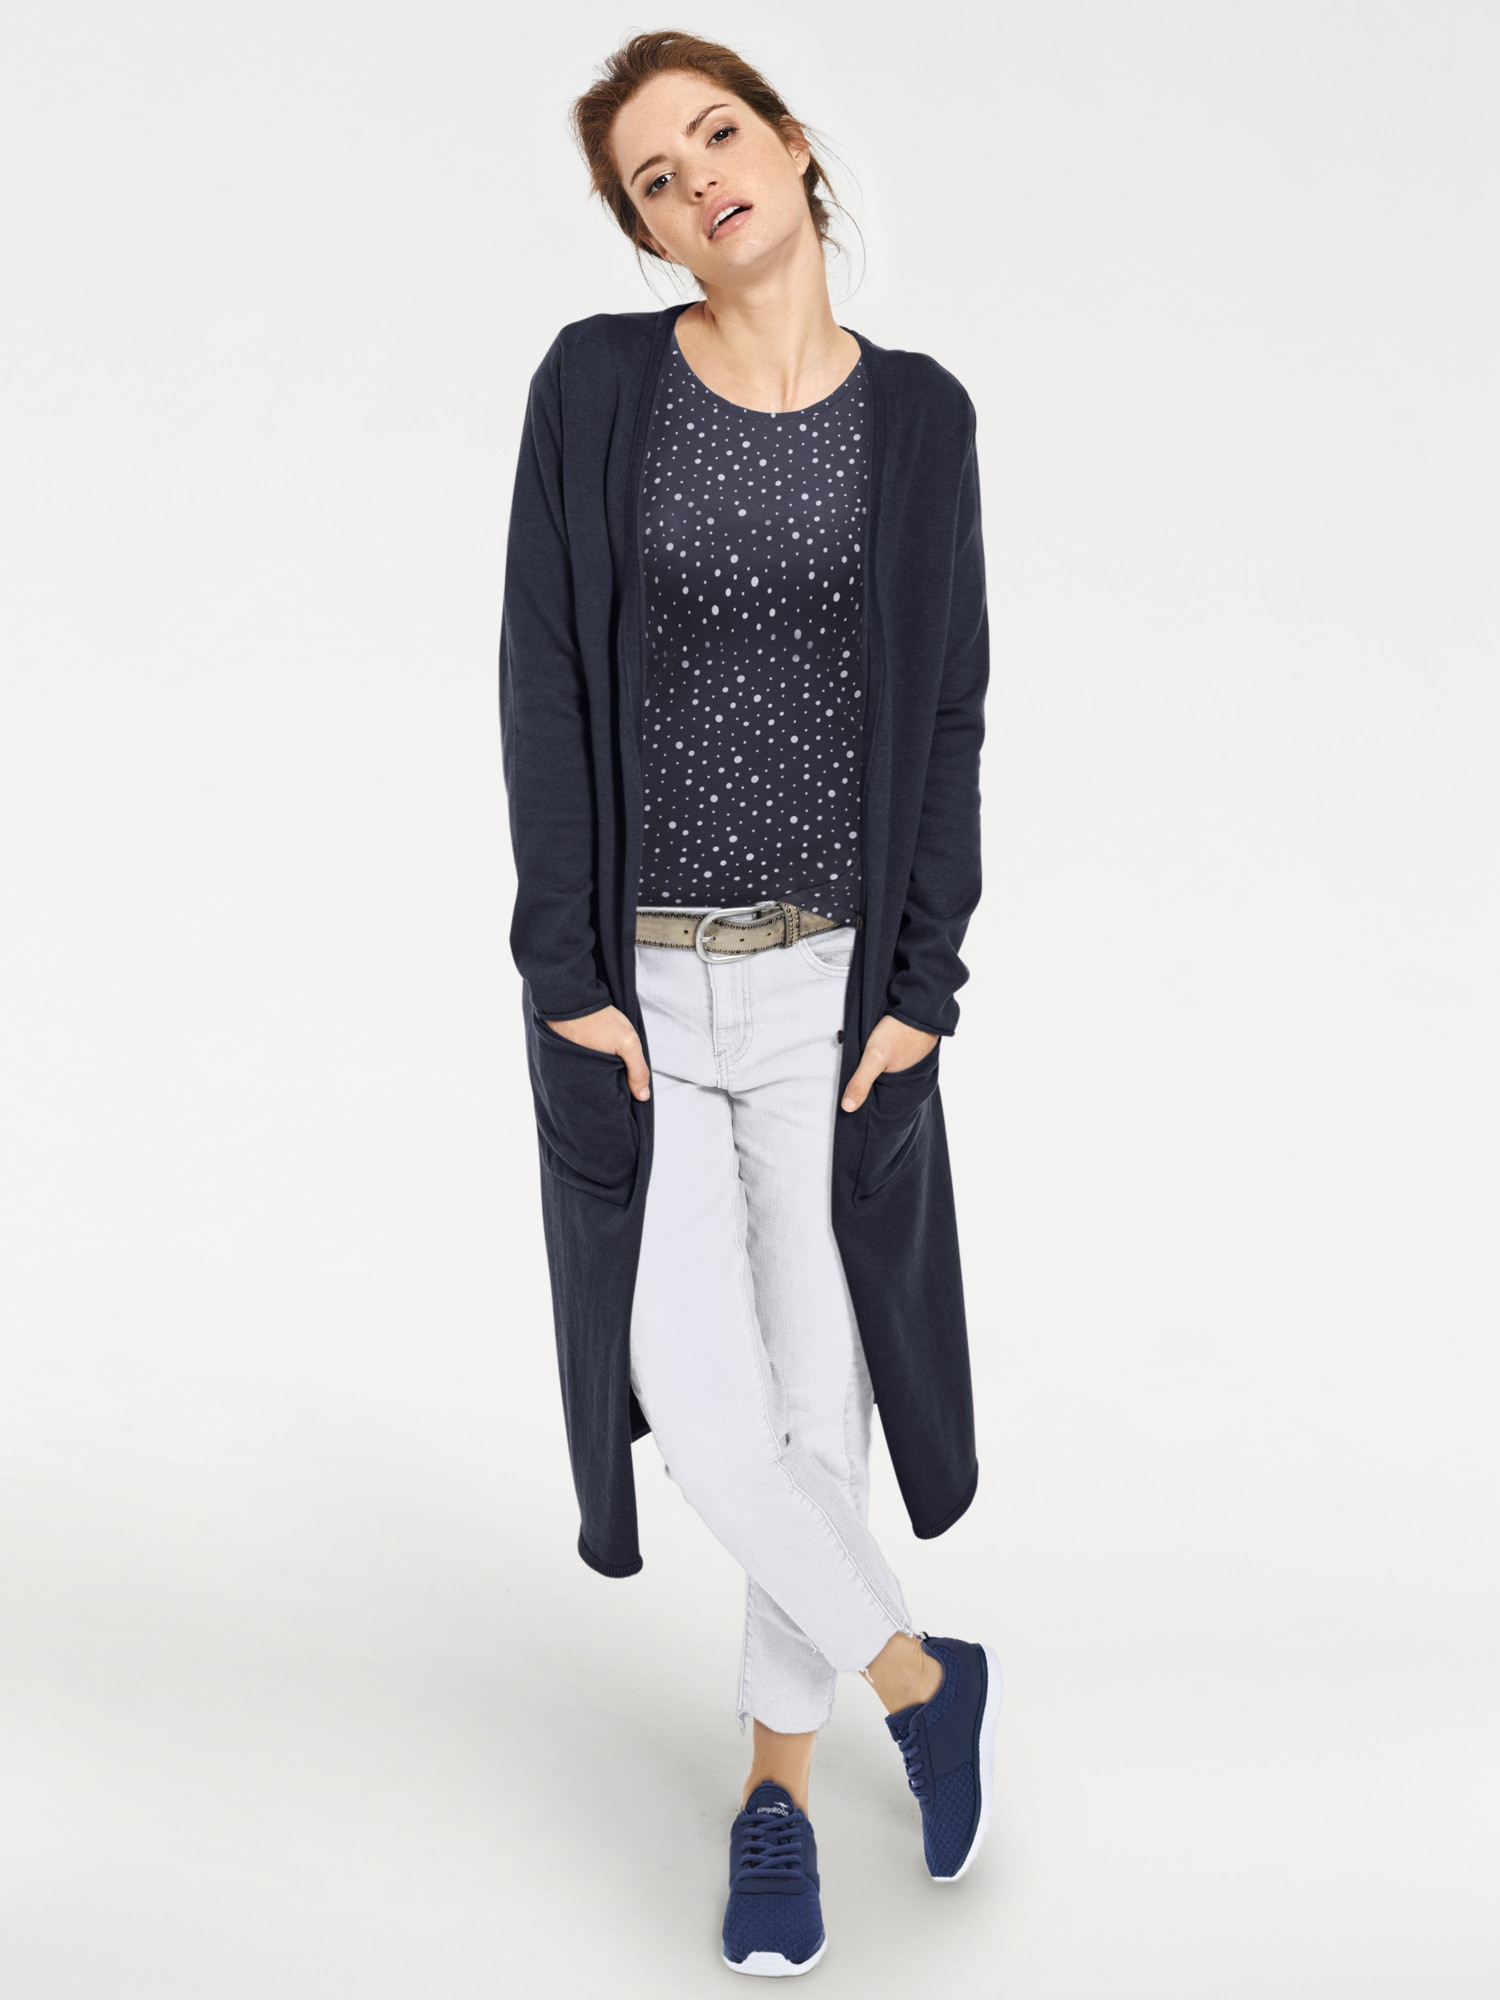 heine CASUAL Longstrickjacke in Feinstrick | Bekleidung > Strickjacken & -mäntel > Strickjacken | heine